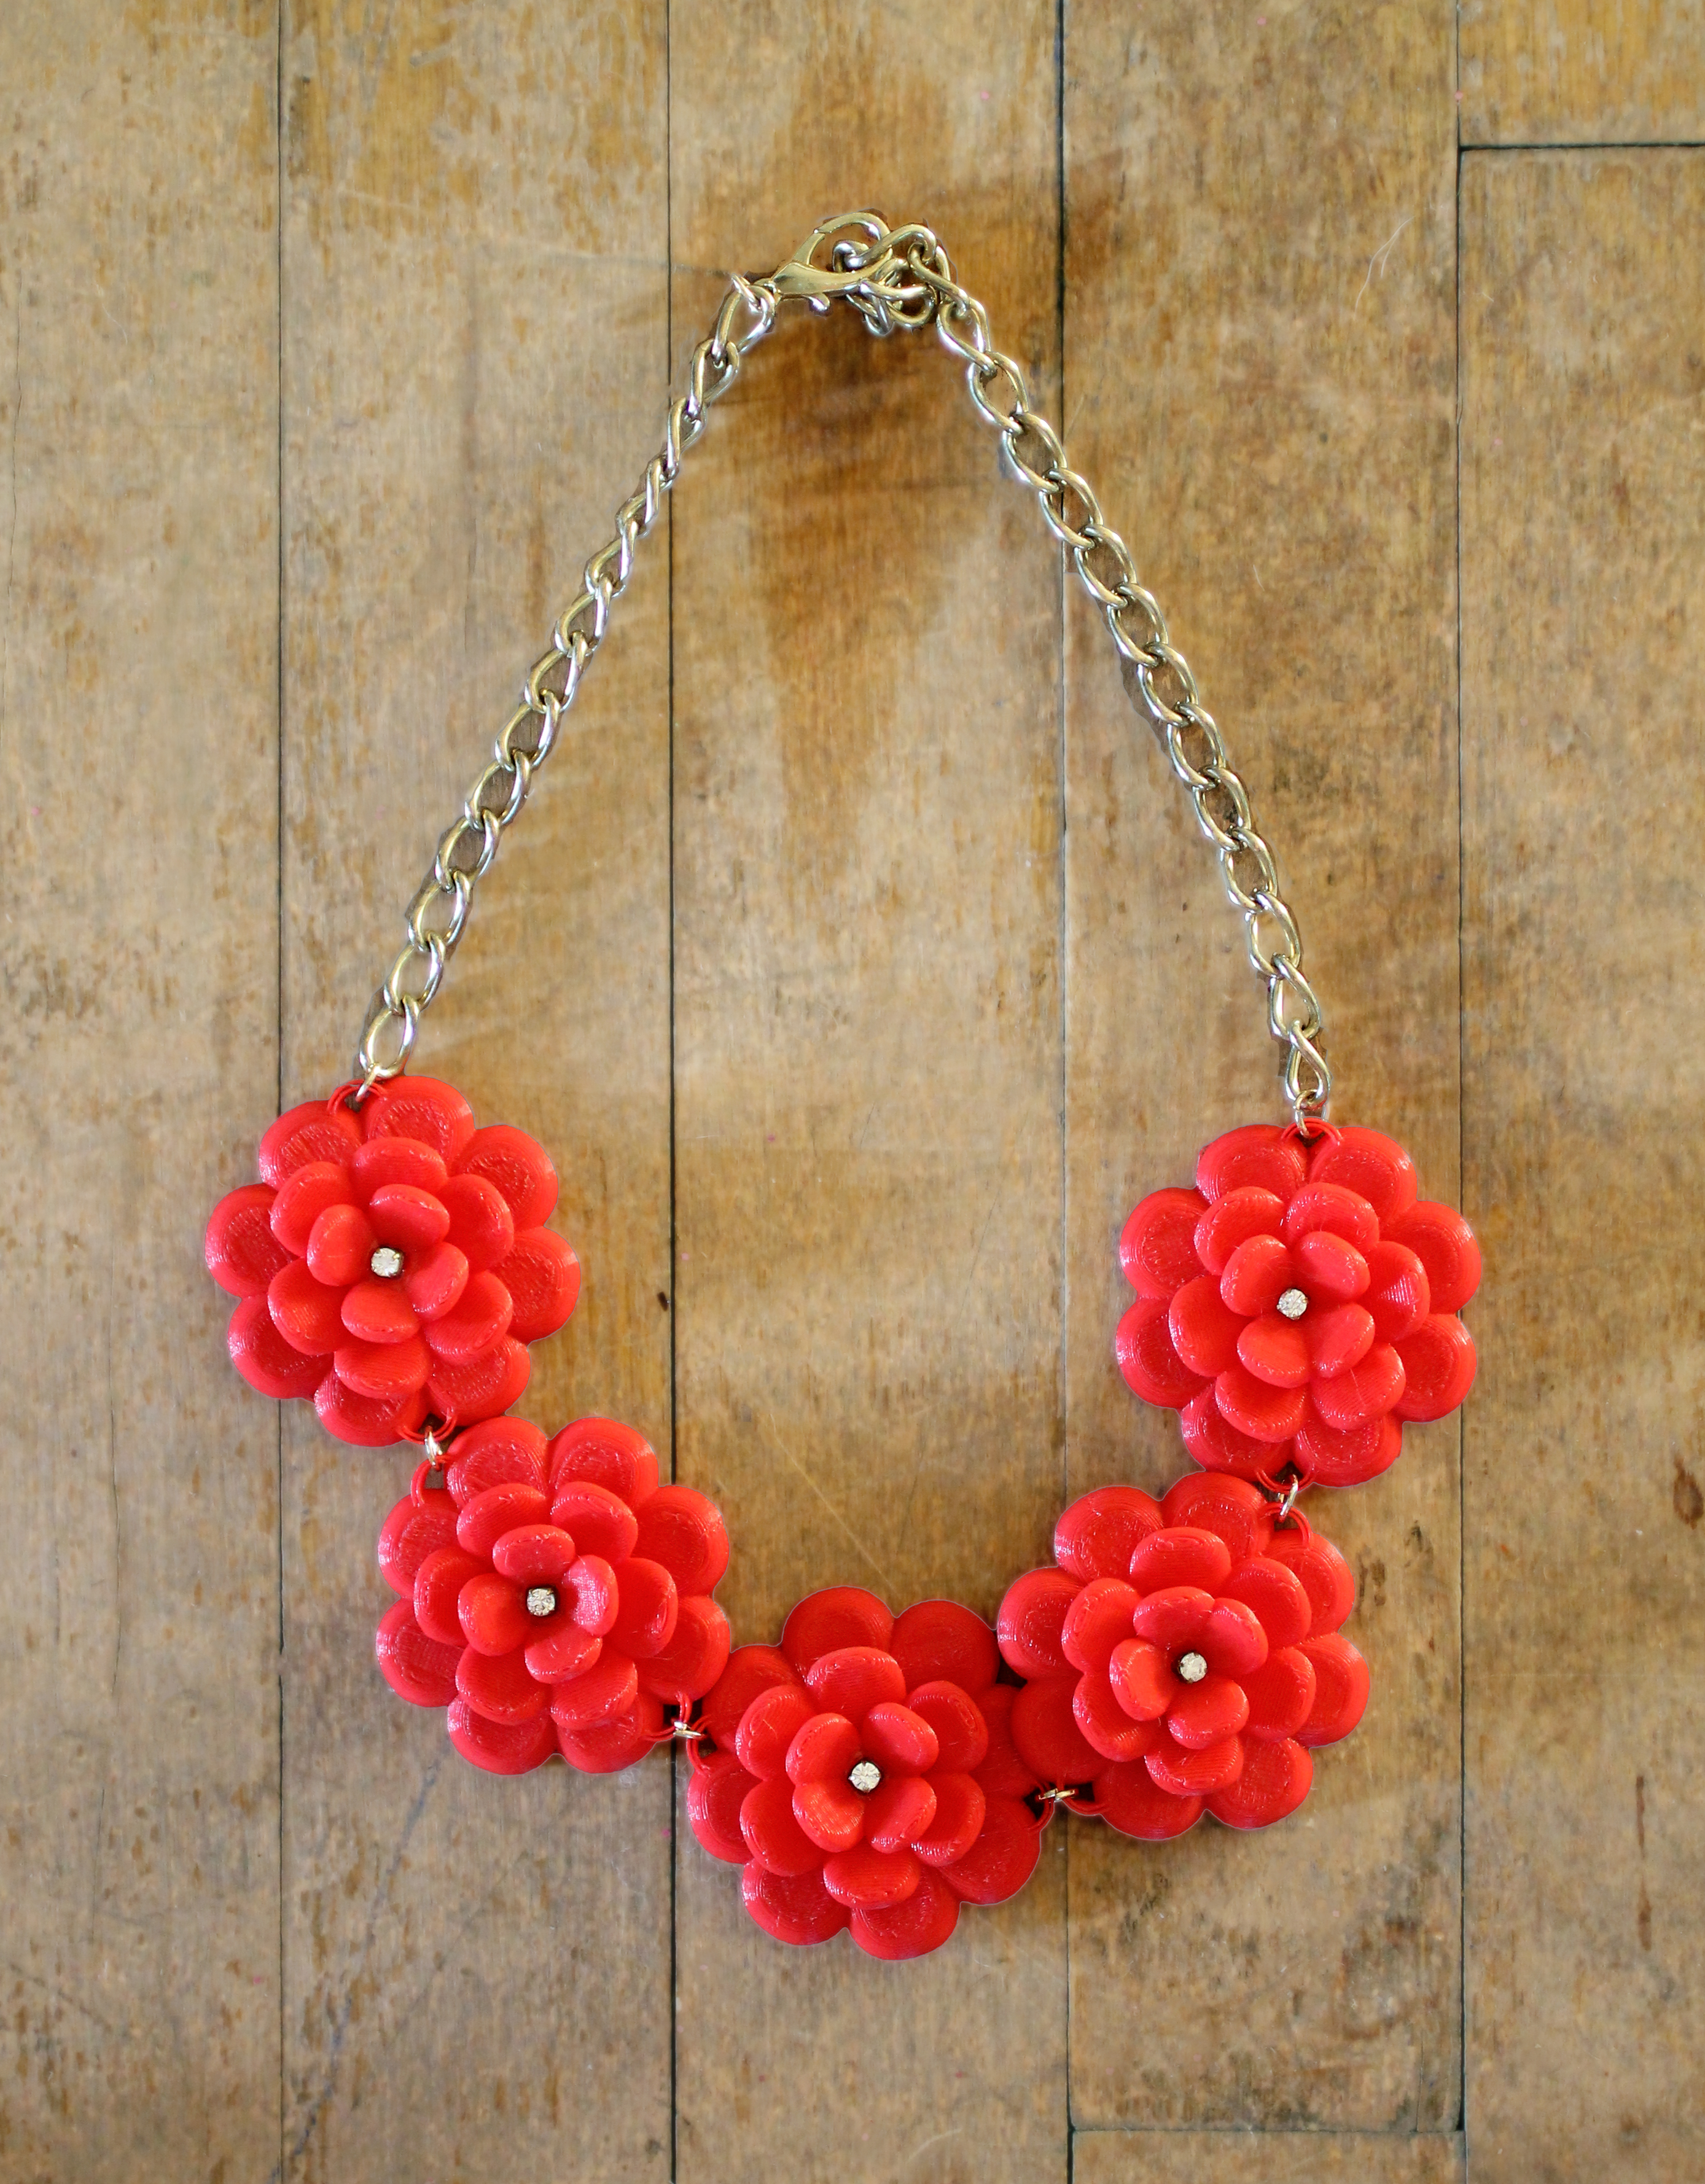 DIY J.Crew Rose Wreath Necklace - With a 3D Printer - jamiebhannigan.com